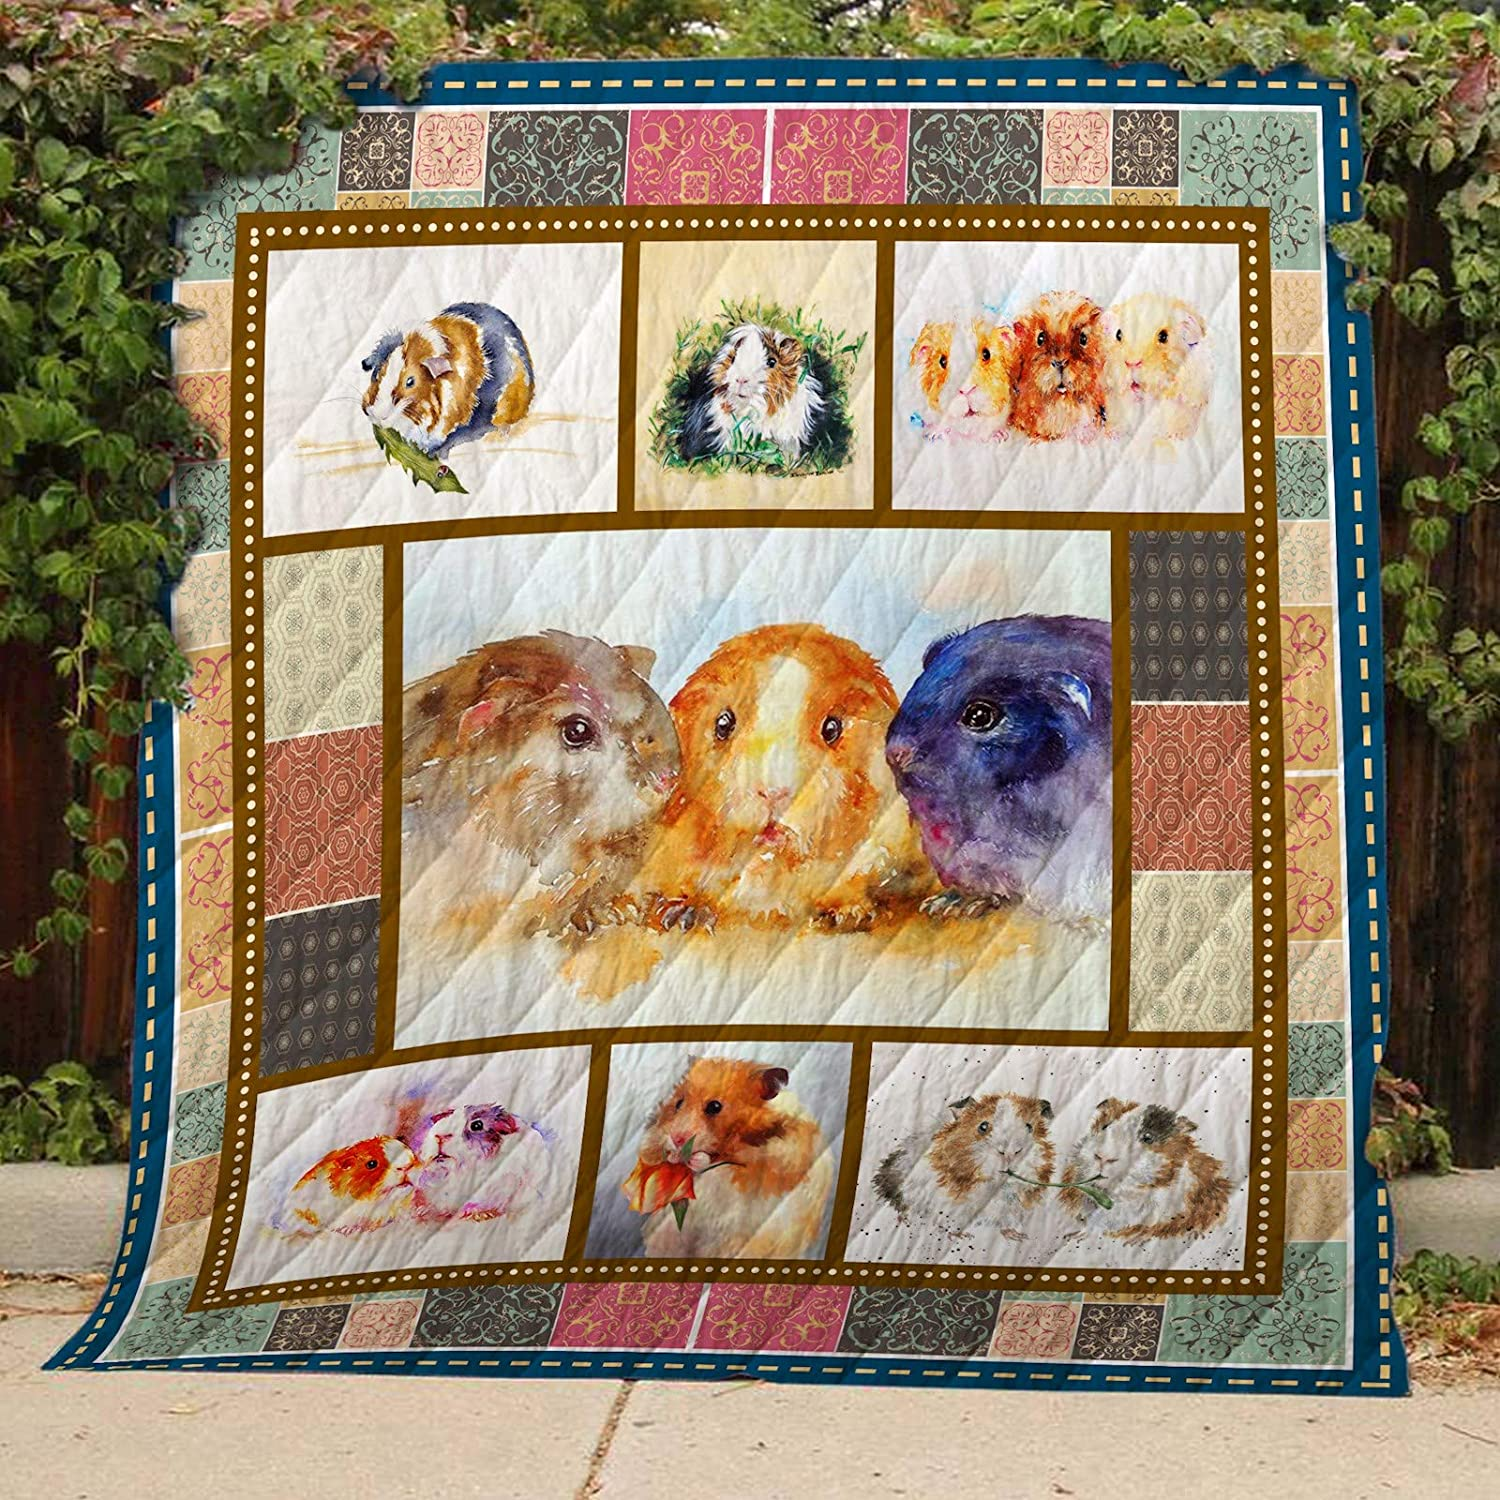 Guinea Pig Quilt TH389, Queen All-Season Quilts Comforters with Reversible Cotton King Queen Twin Size - Best Decorative Quilts-Unique Quilted for Gifts